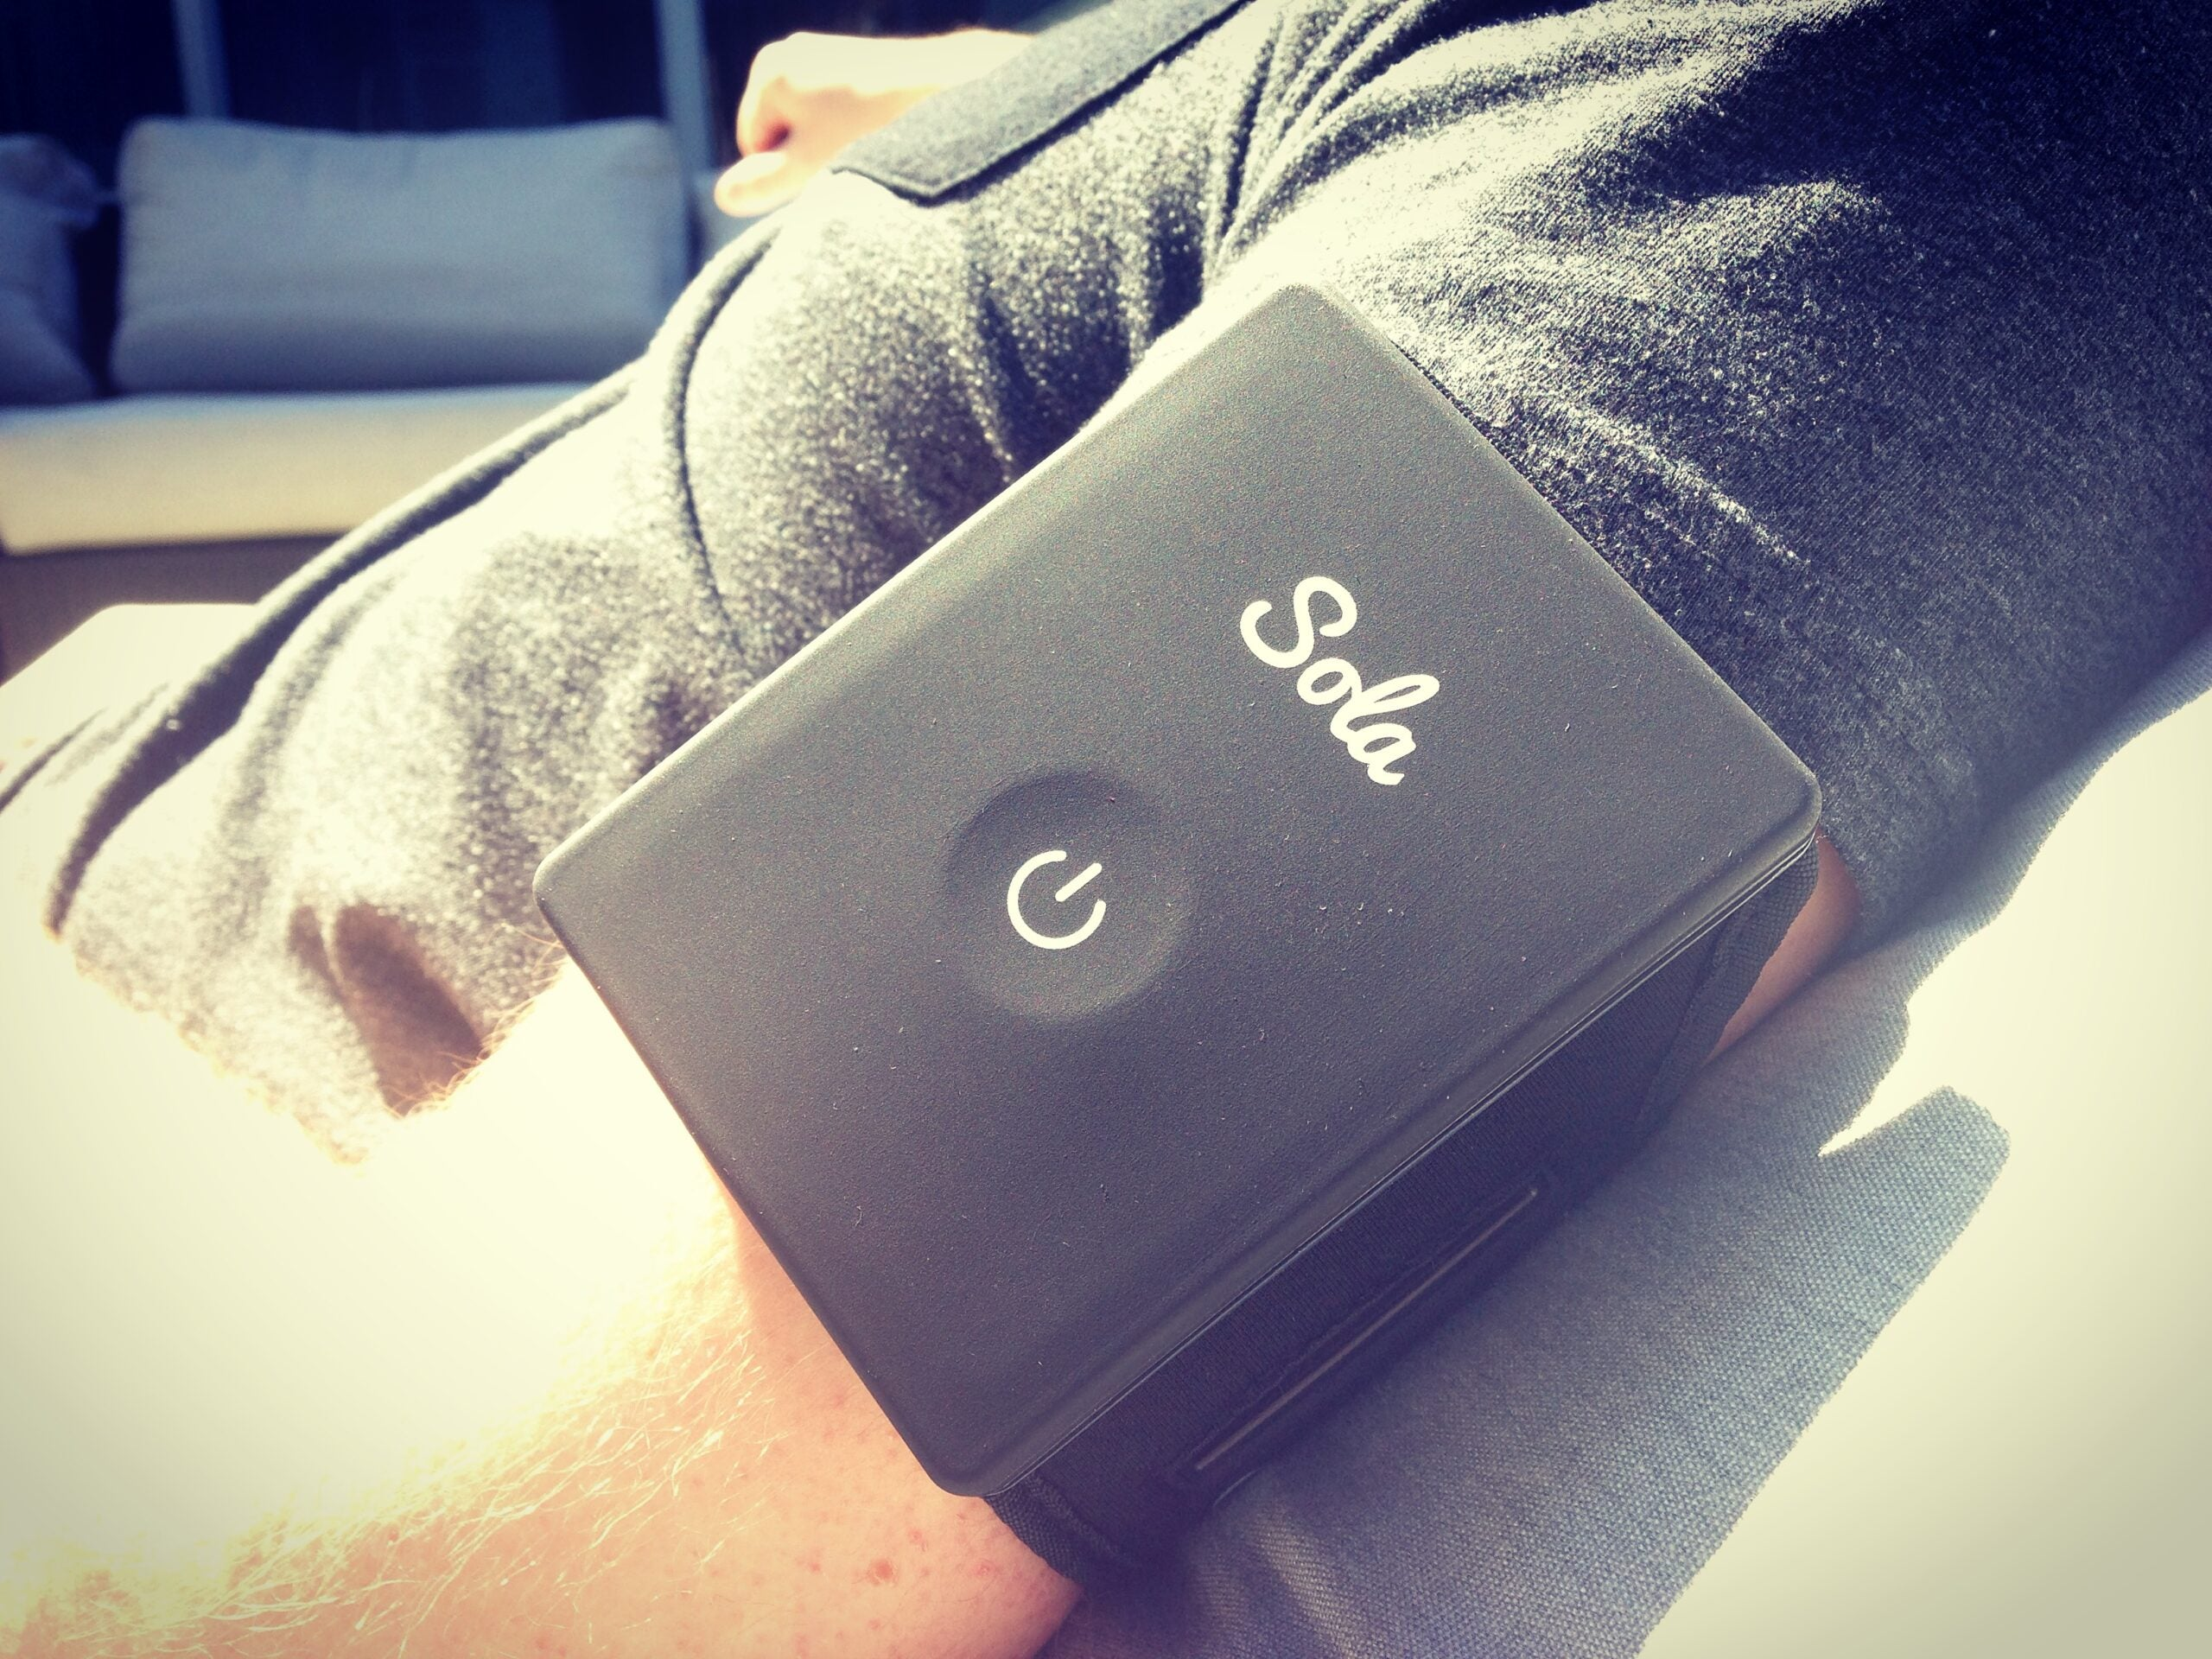 Sola Is Your Own Personal Heater